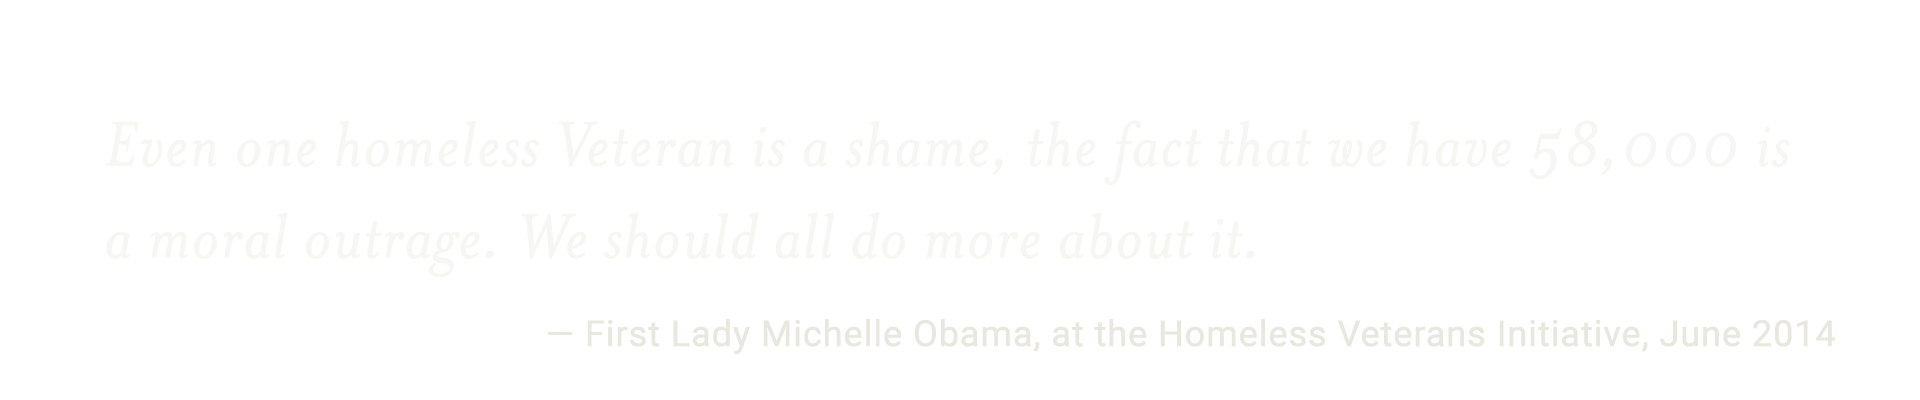 Even one homeless Veteran is a shame, the fact that we have 58,000 is a moral outrage. We should all do more about it. -First Lady Michelle Obama